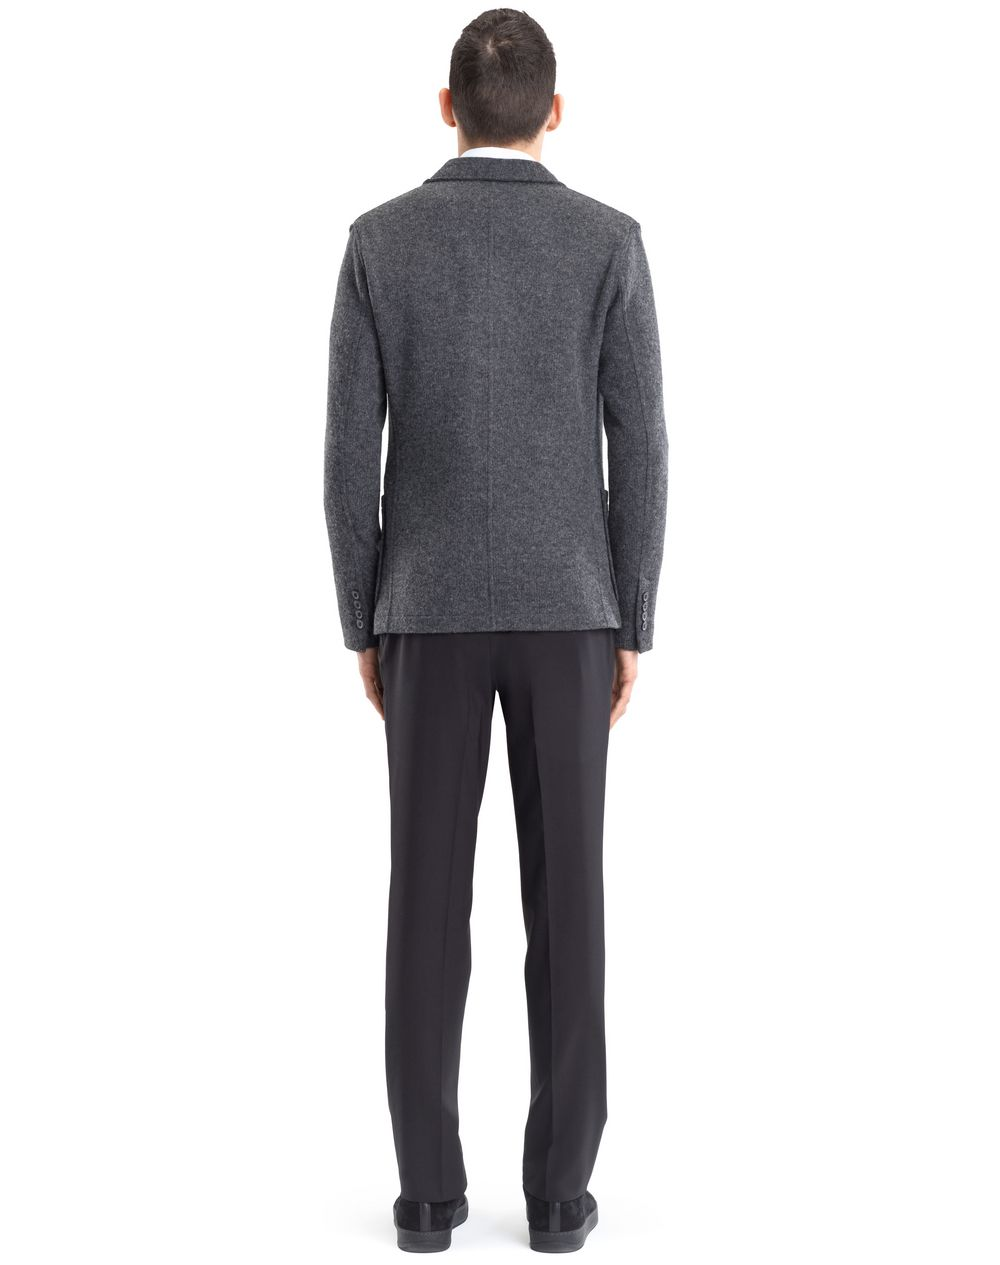 RIB KNIT DECONSTRUCTED JACKET - Lanvin